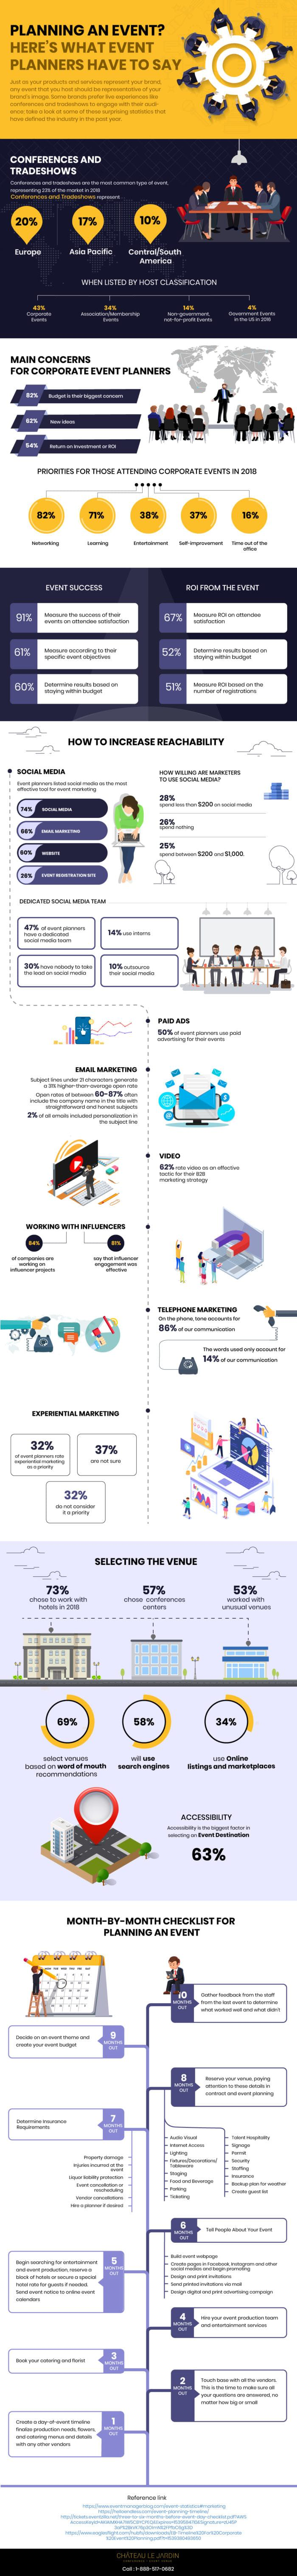 Planning An Event infographic